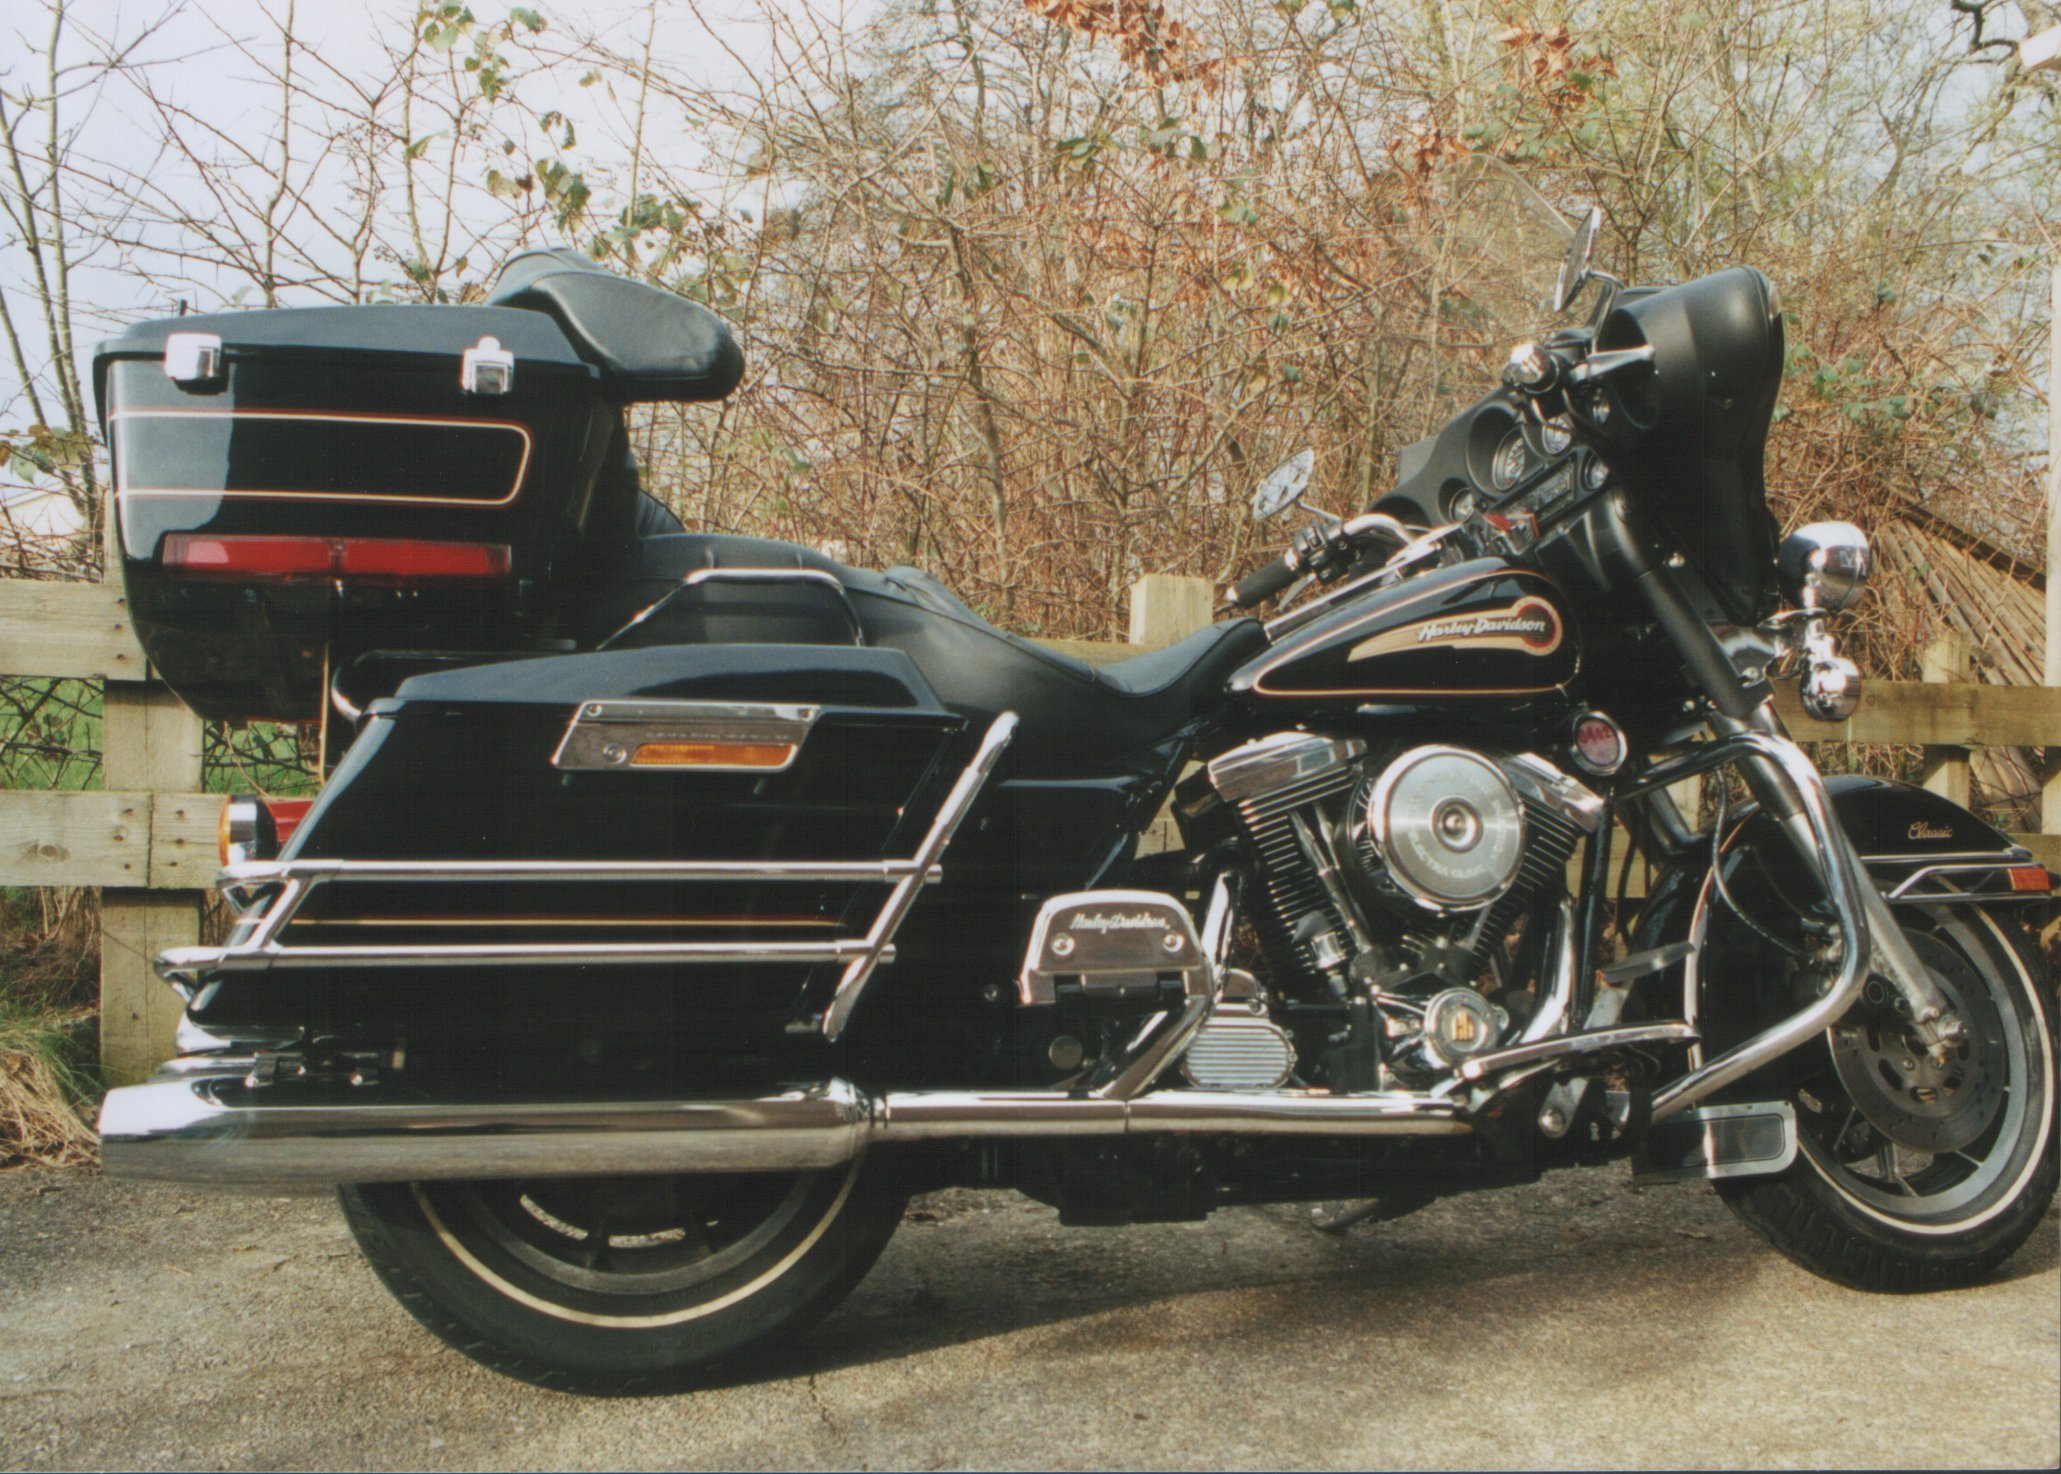 Harley-Davidson FLHTC Electra Glide Classic 2002 pics #17764